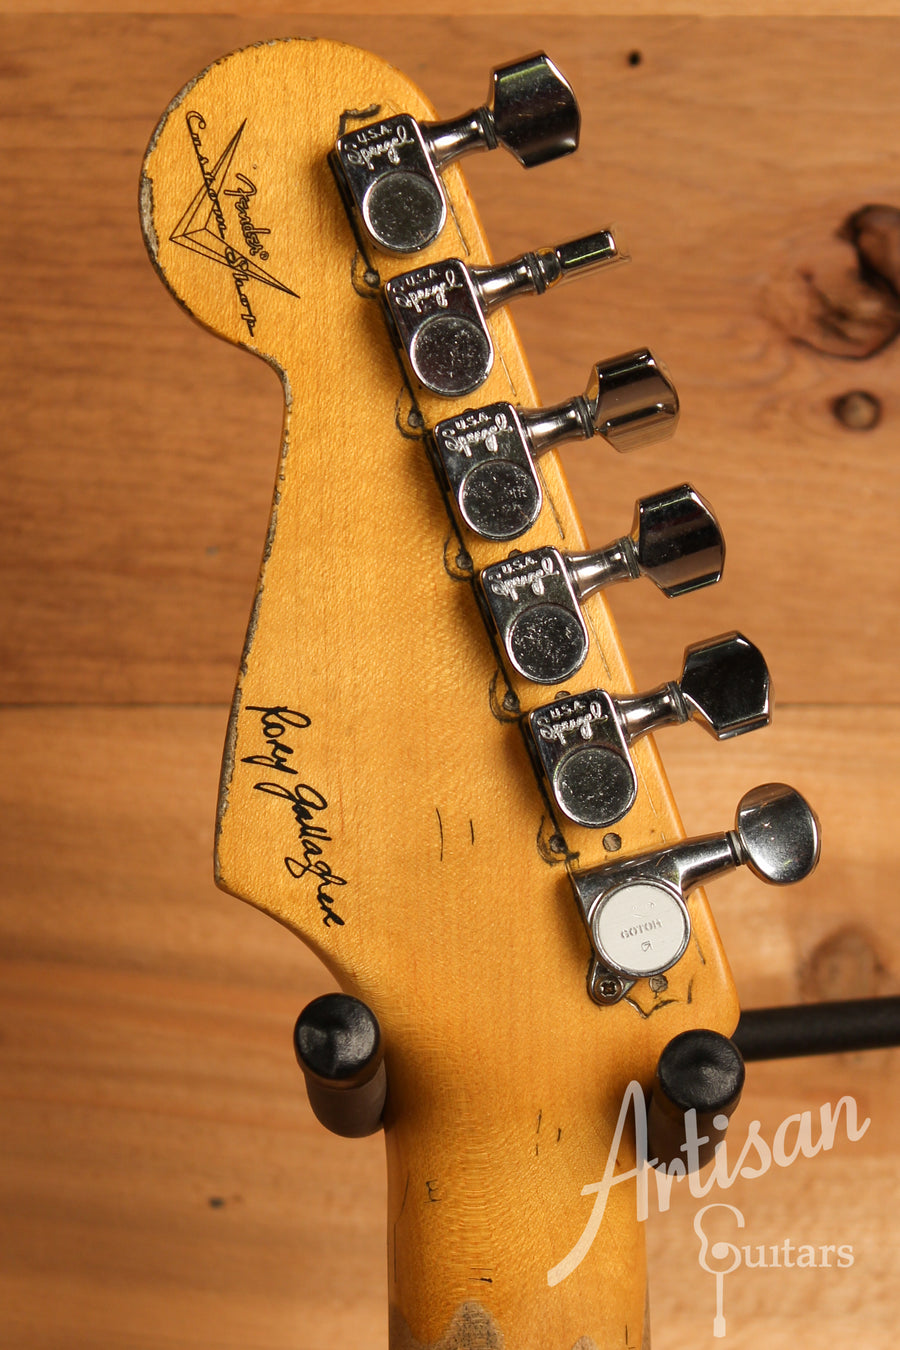 Fender Custom Shop Artist Collection Rory Gallagher Signature Stratocaster Heavy Relic 3 Color Sunburst Finish ID-11337 - Artisan Guitars